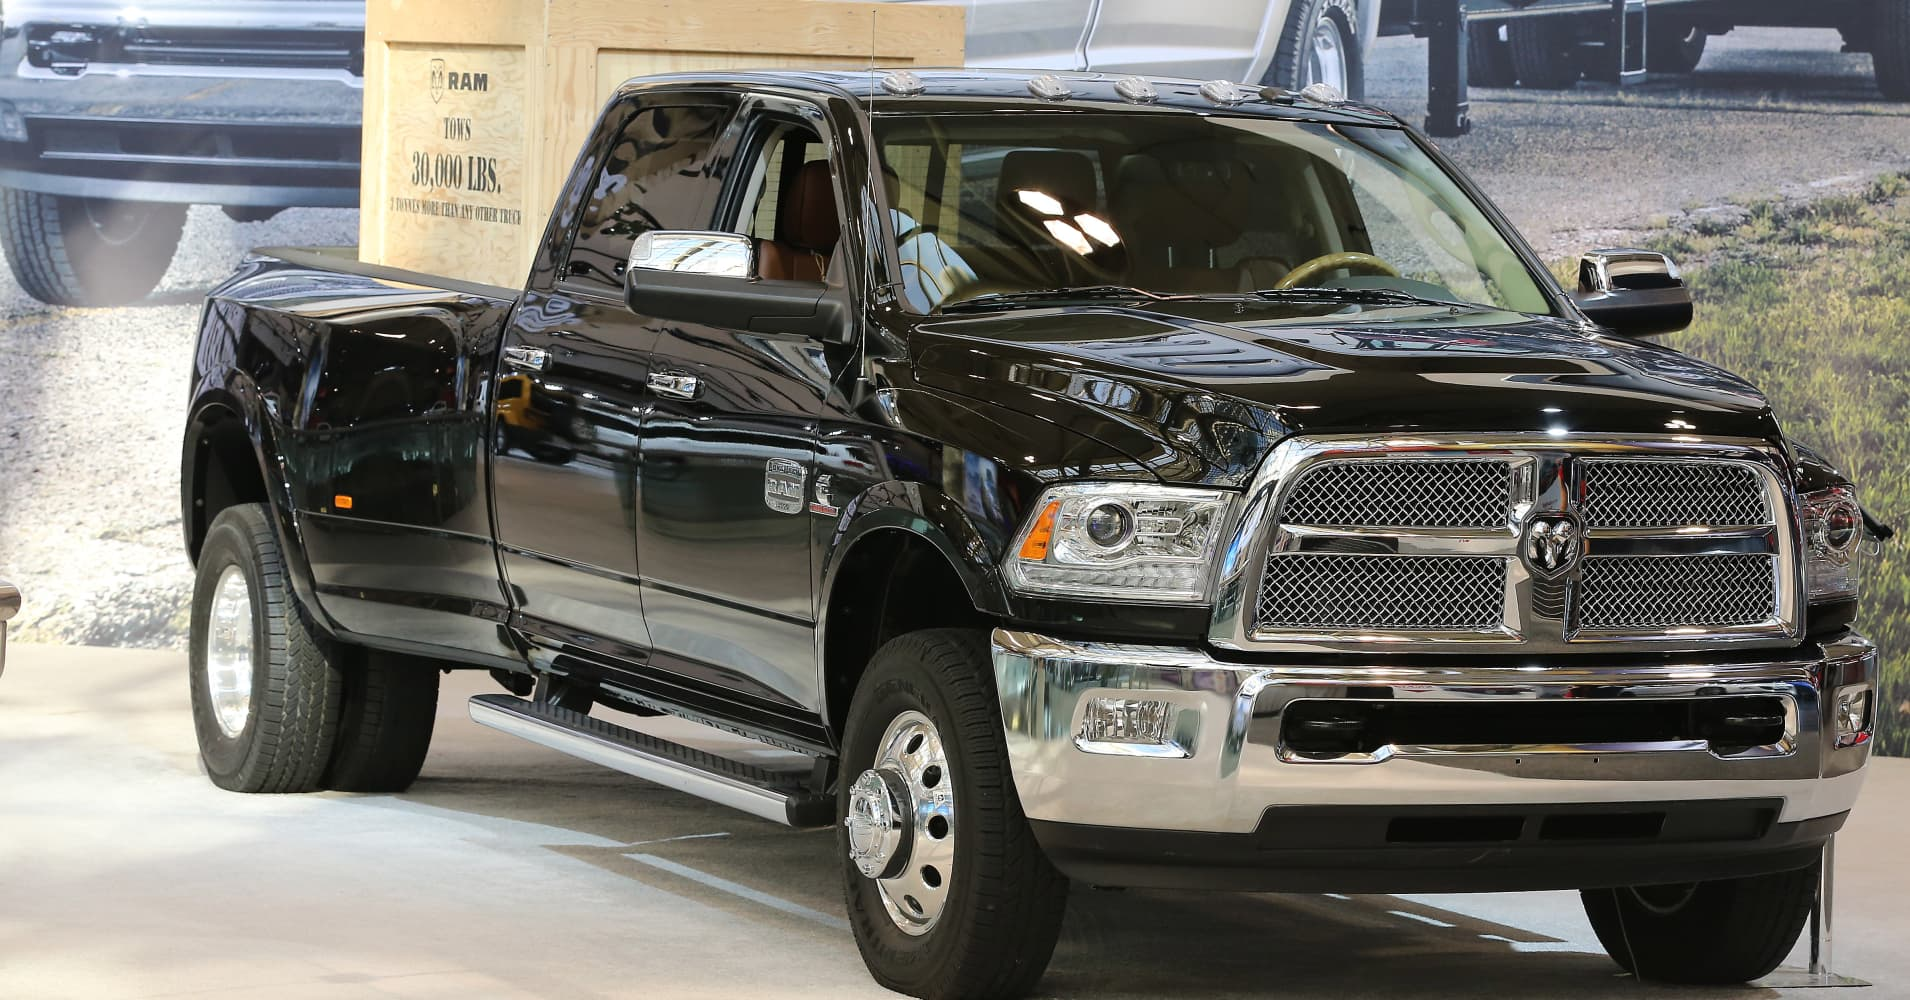 fiat chrysler recalling nearly 500 000 ram pickup trucks for fire risk. Black Bedroom Furniture Sets. Home Design Ideas